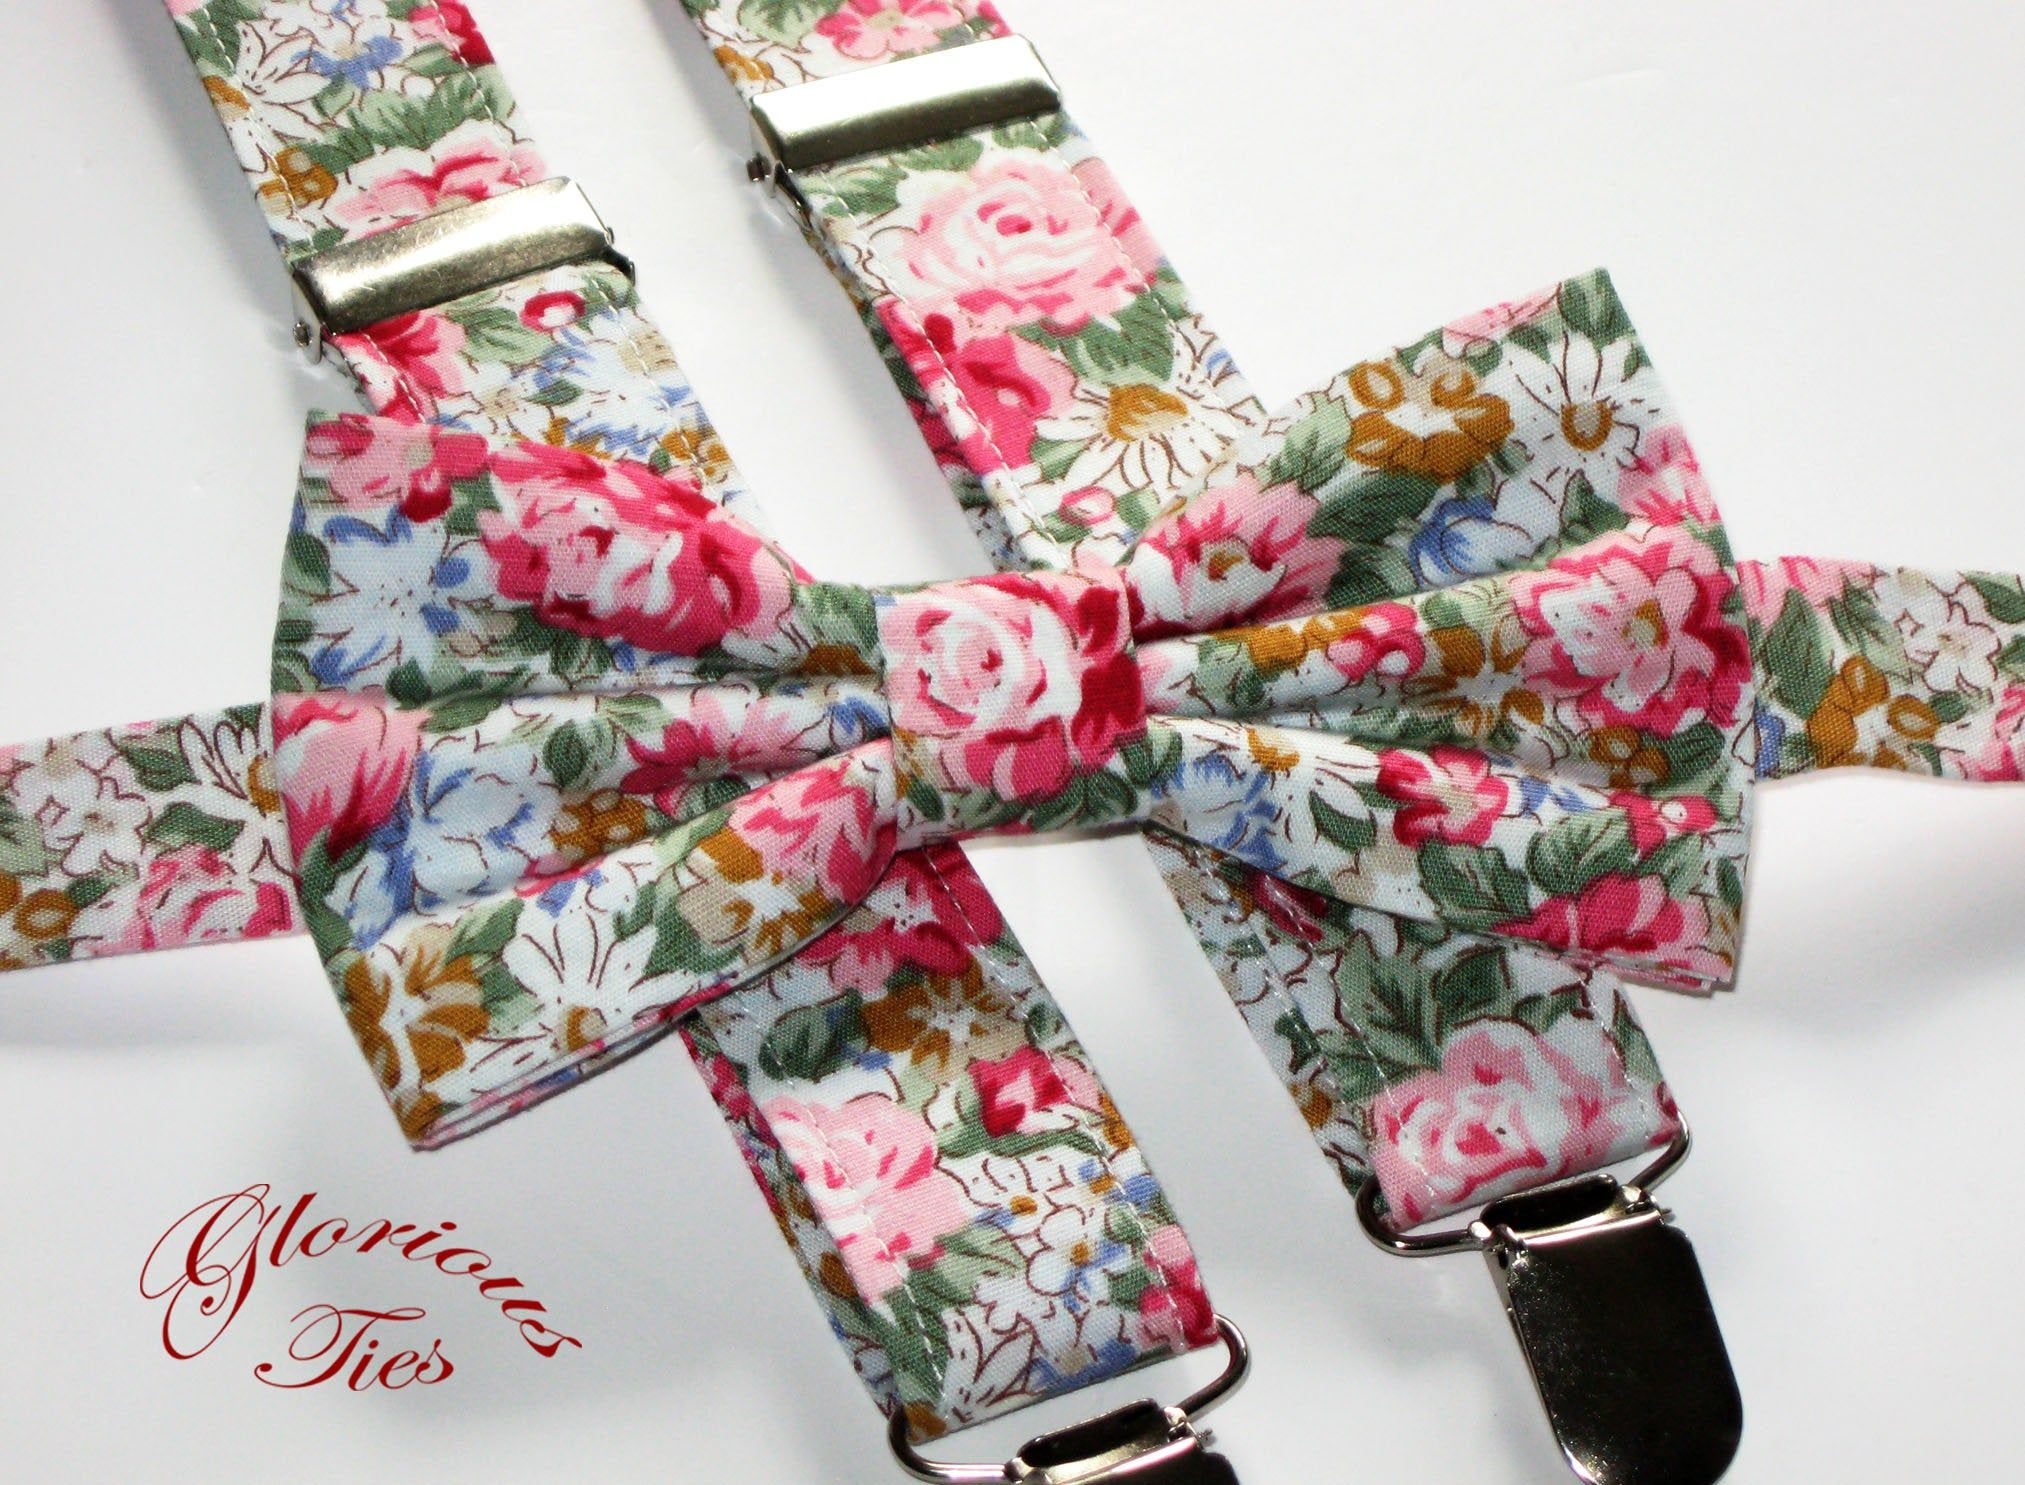 Floral bow tie & suspenders. Pink and green floral braces